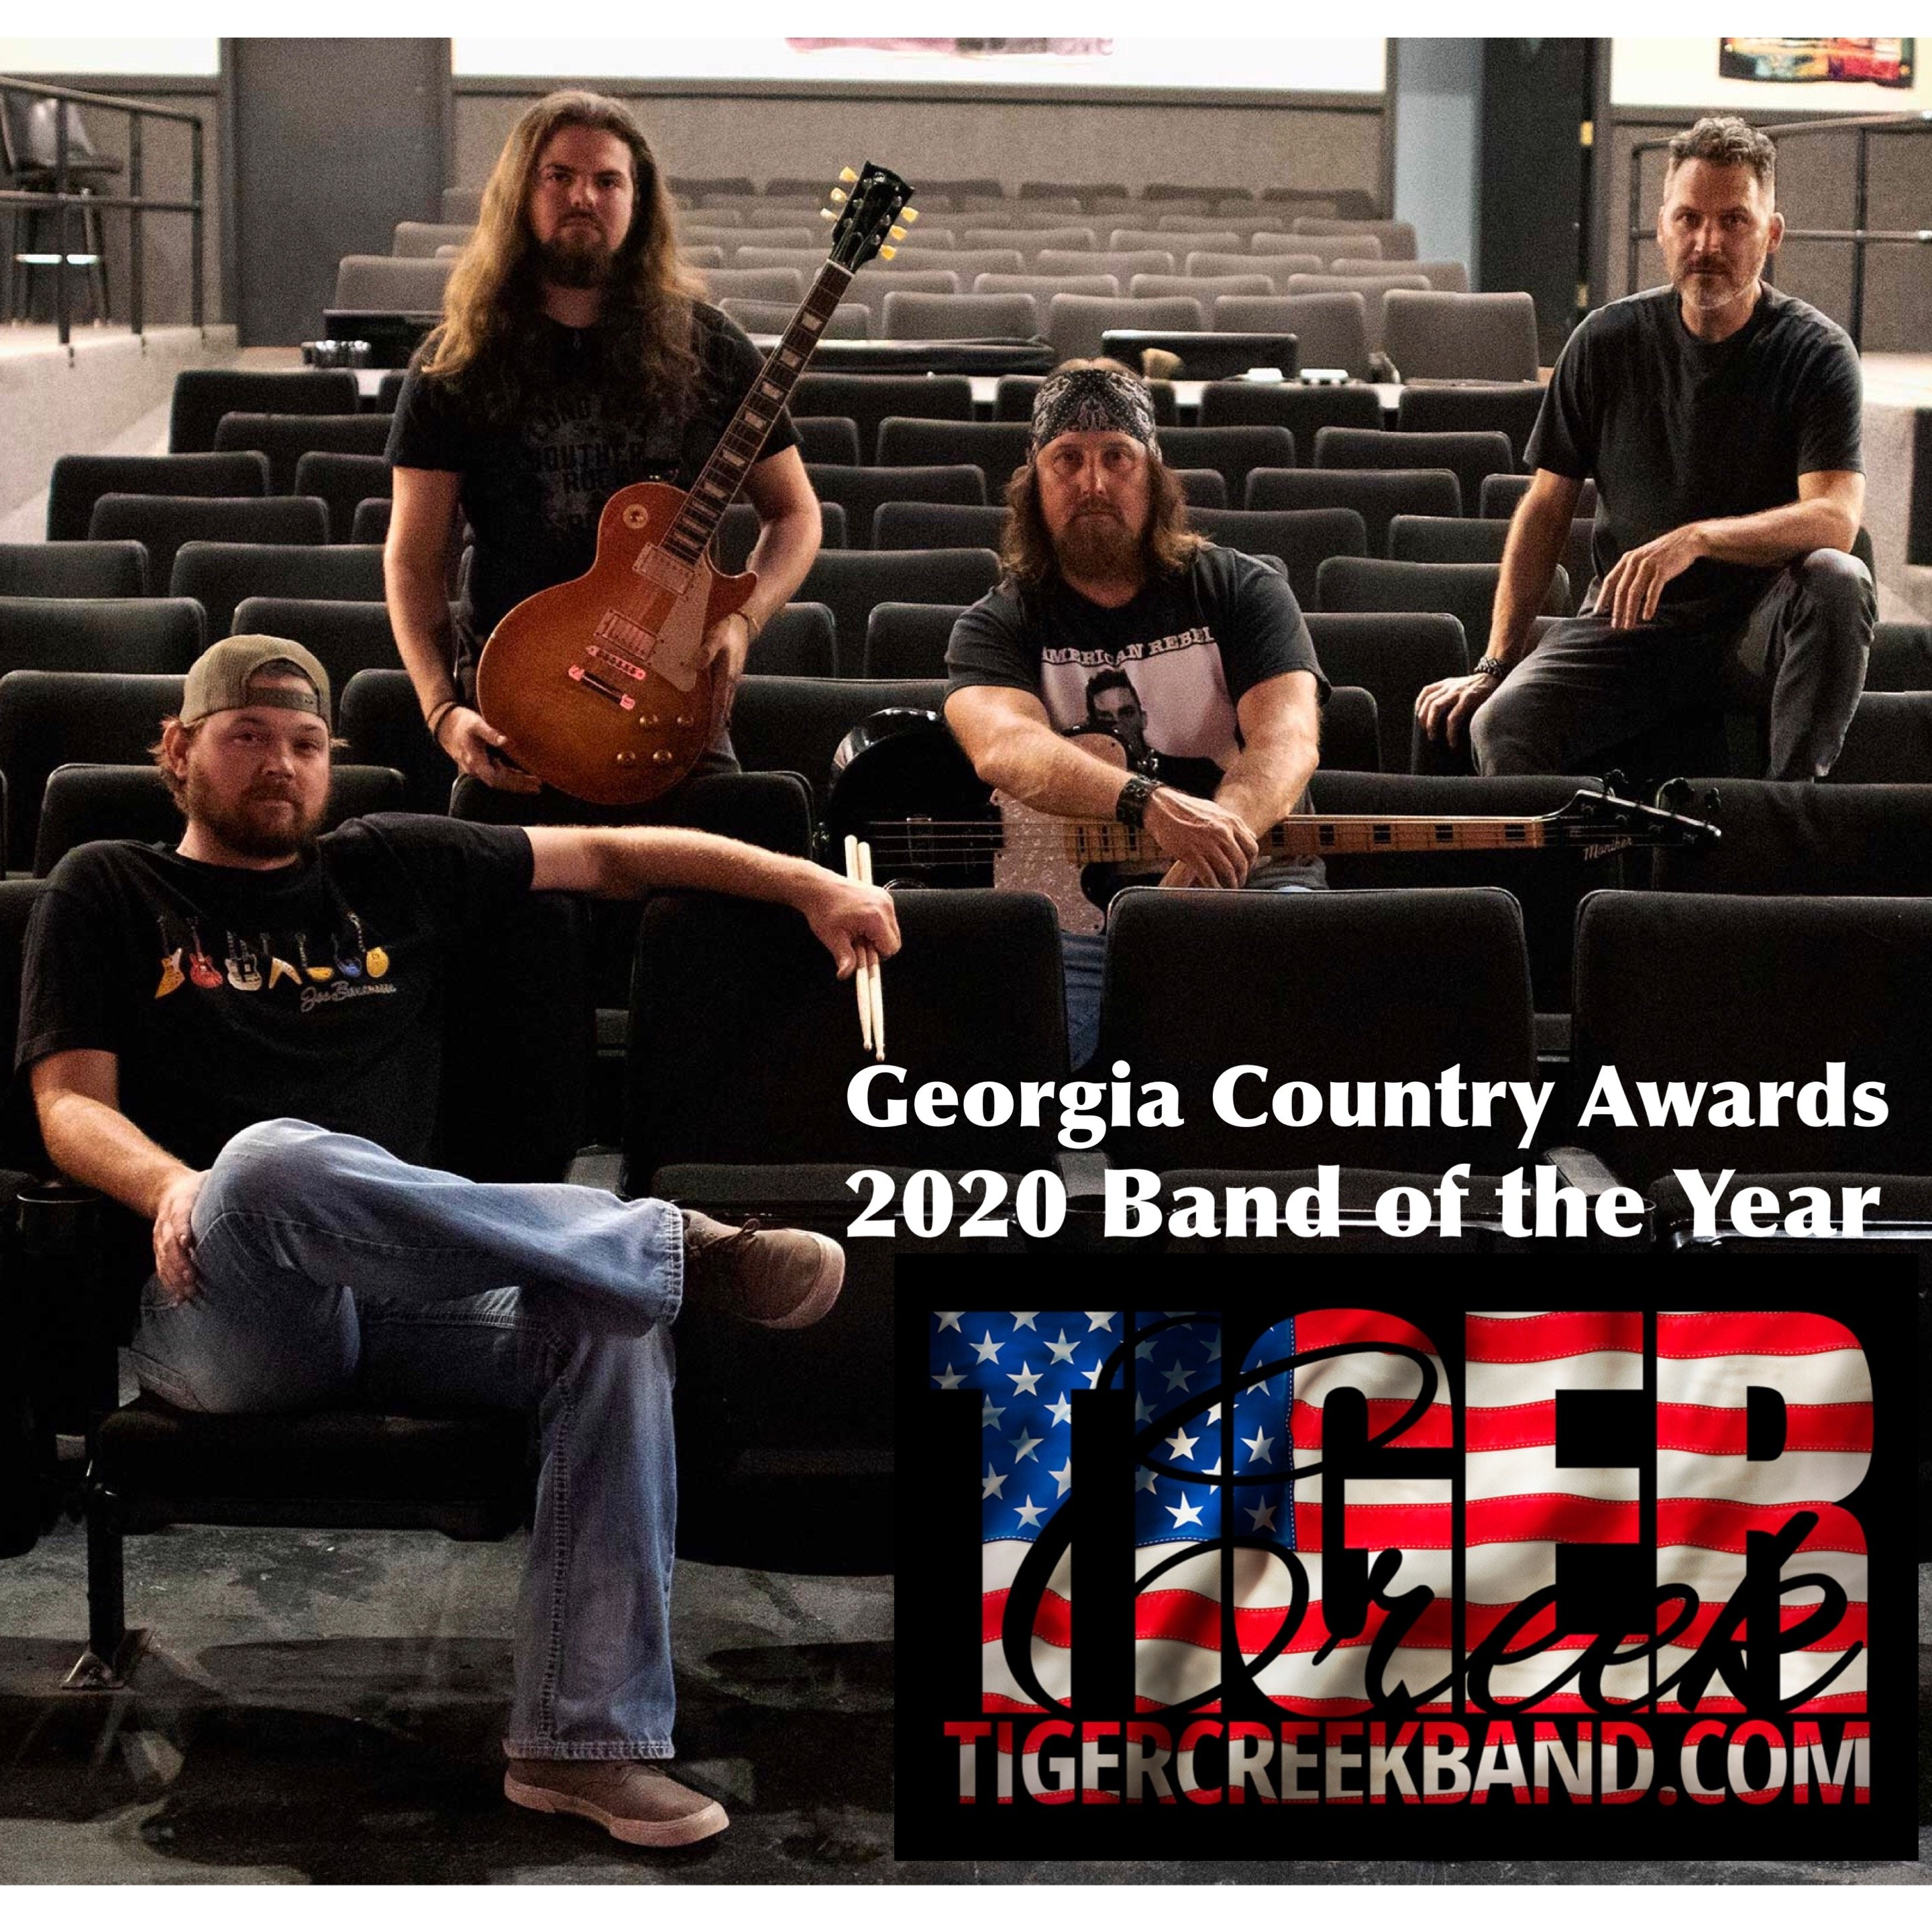 Georgia-Country Awards 2020 Band of the Year